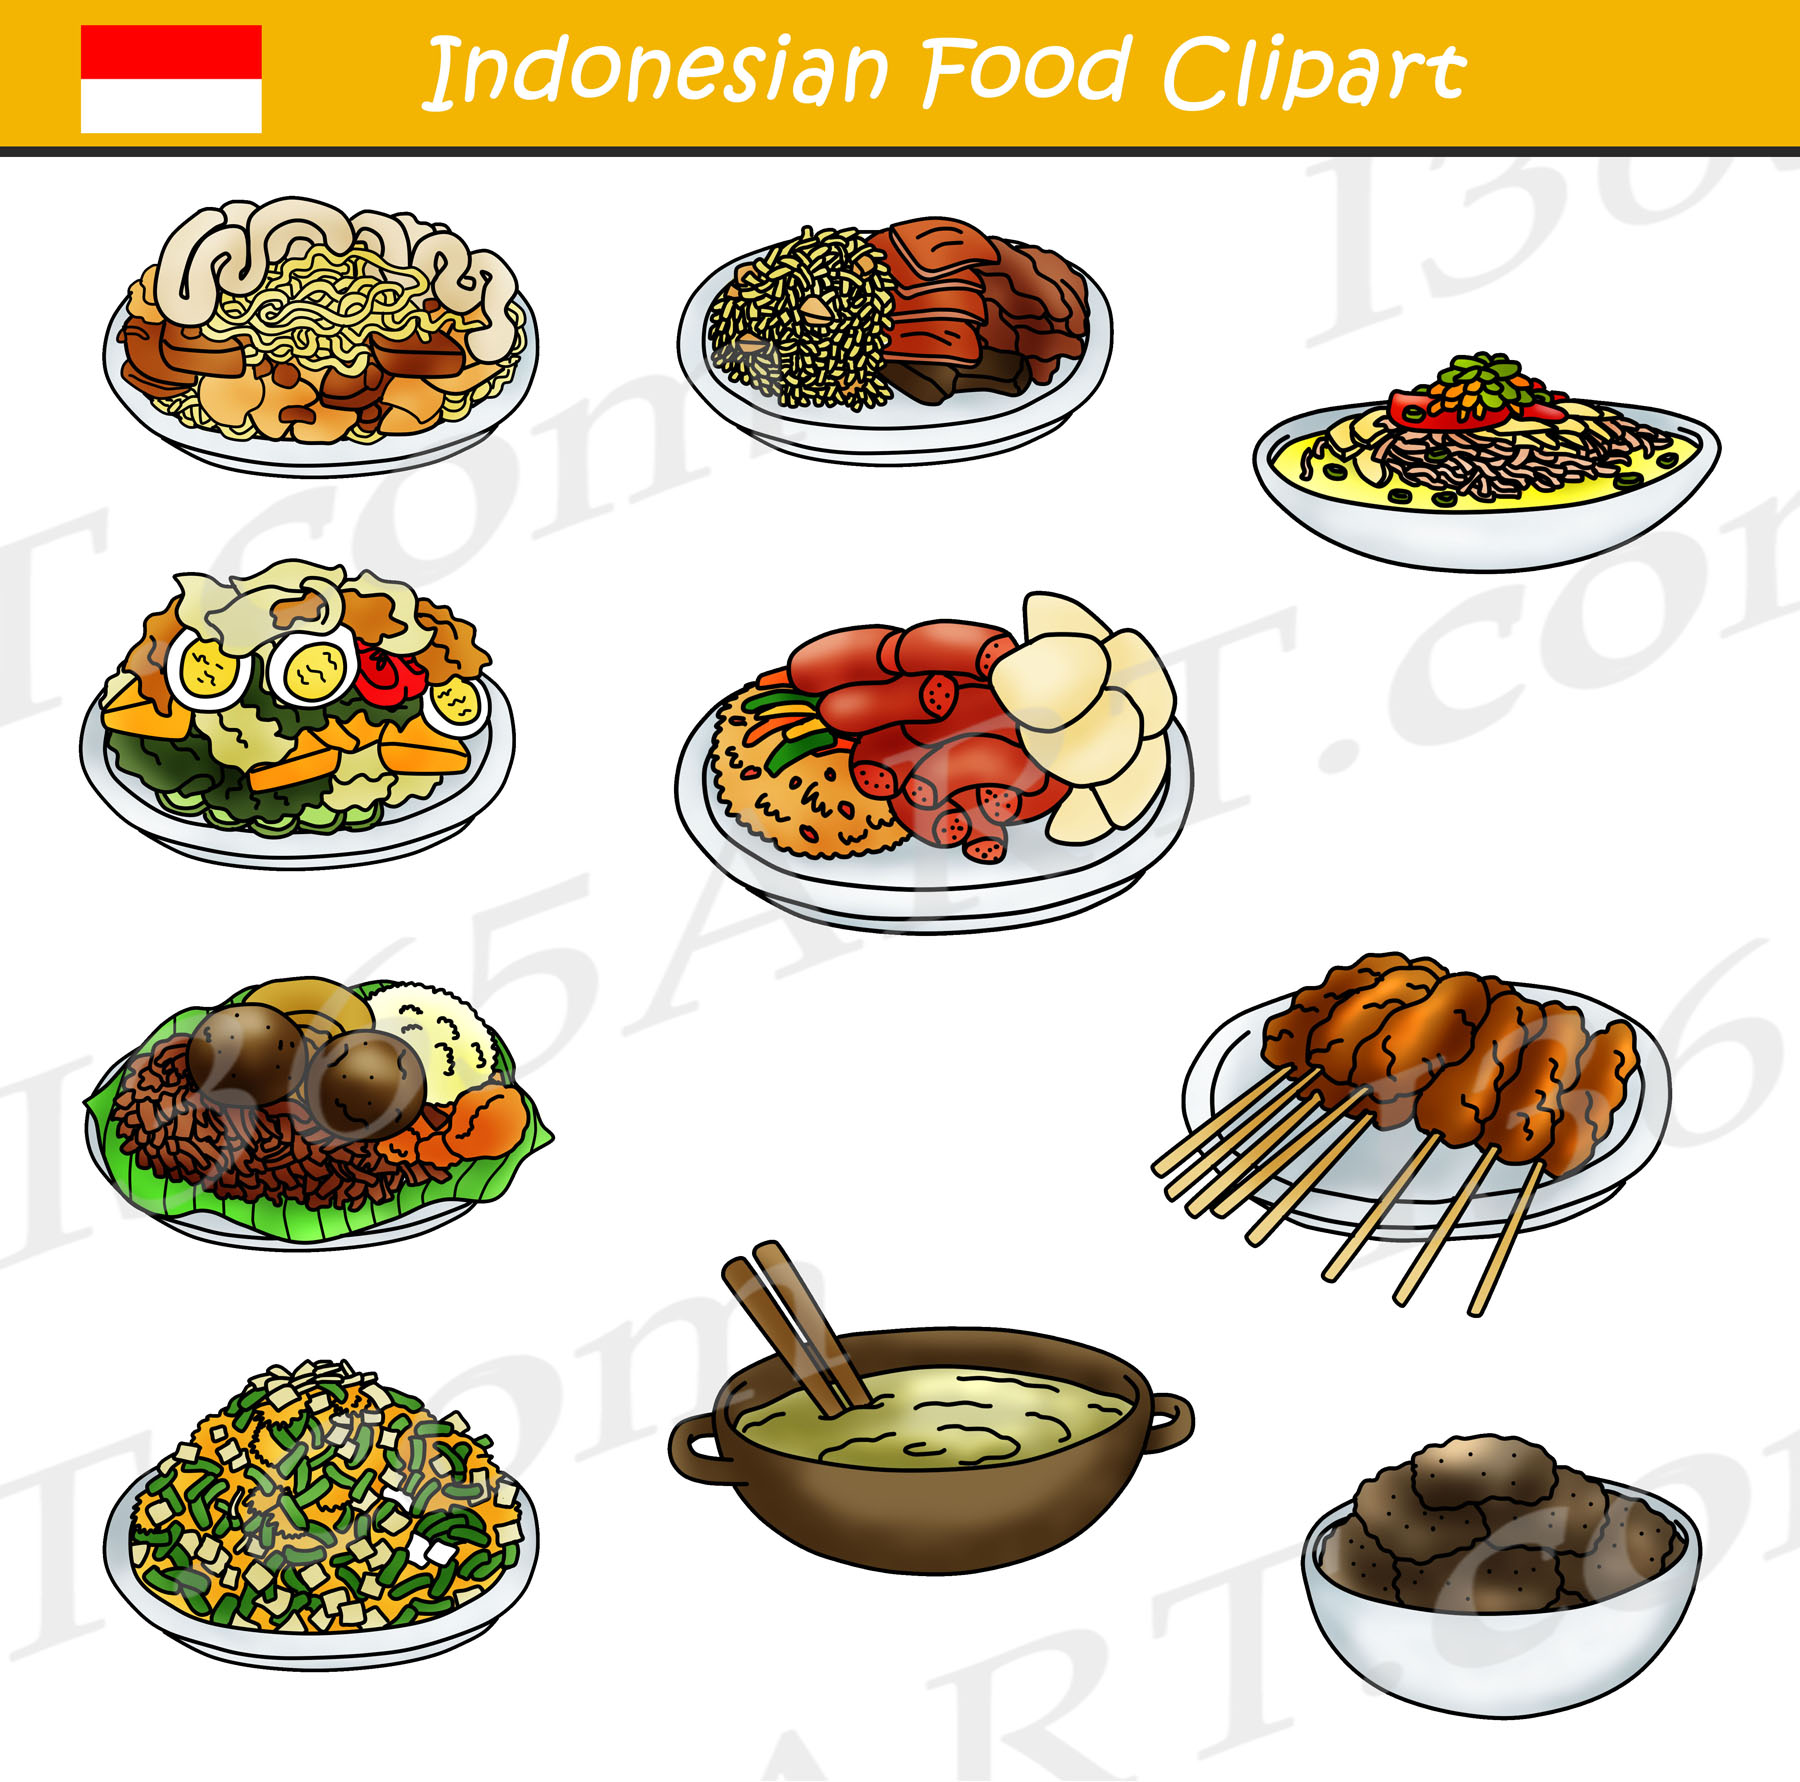 food clipart indonesian filipino bundle chinese indian graphics japanese korean indonesia asian dishes foodclipart recipes